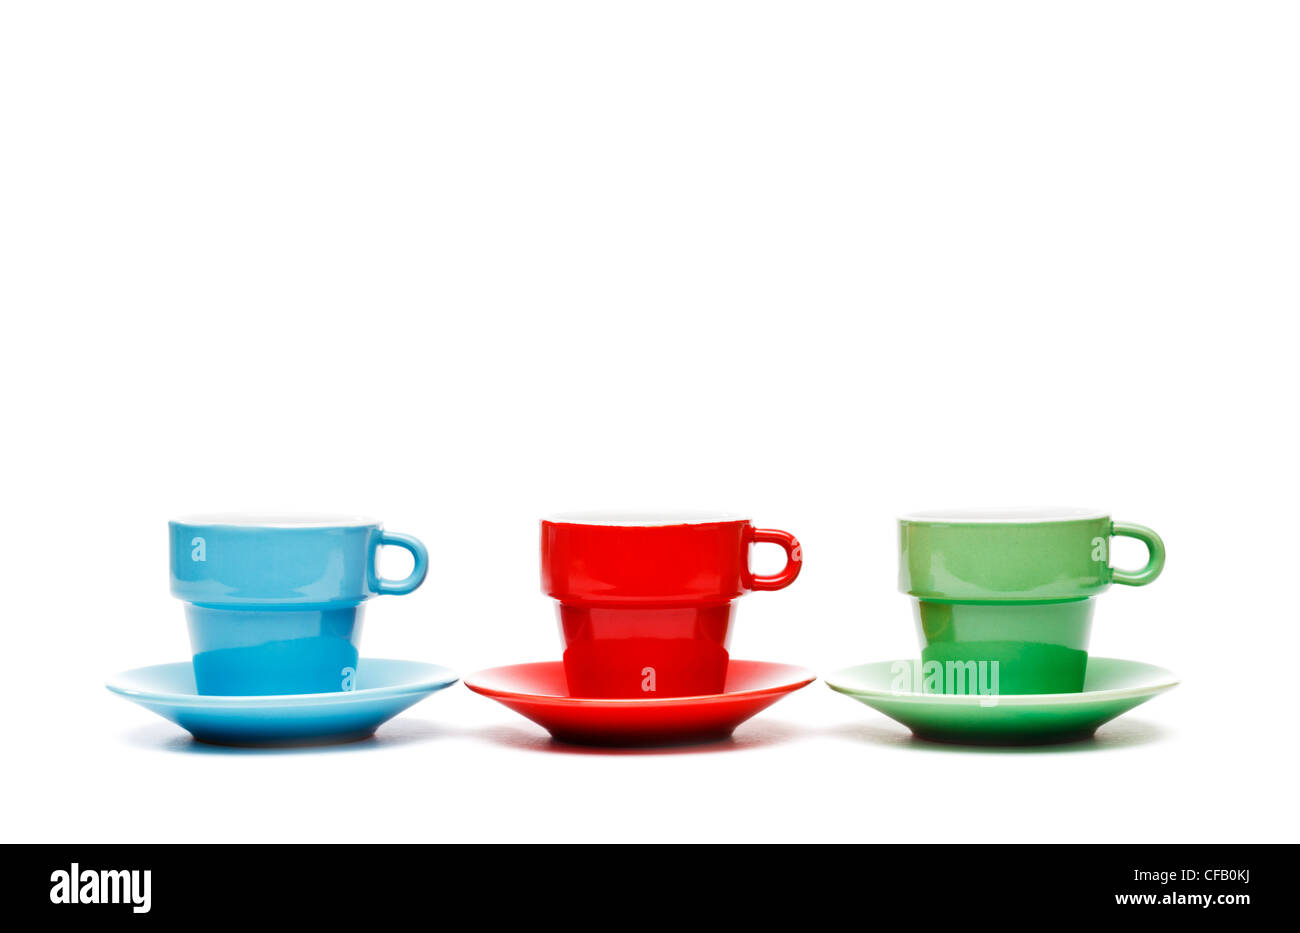 Three coffee cups - Stock Image